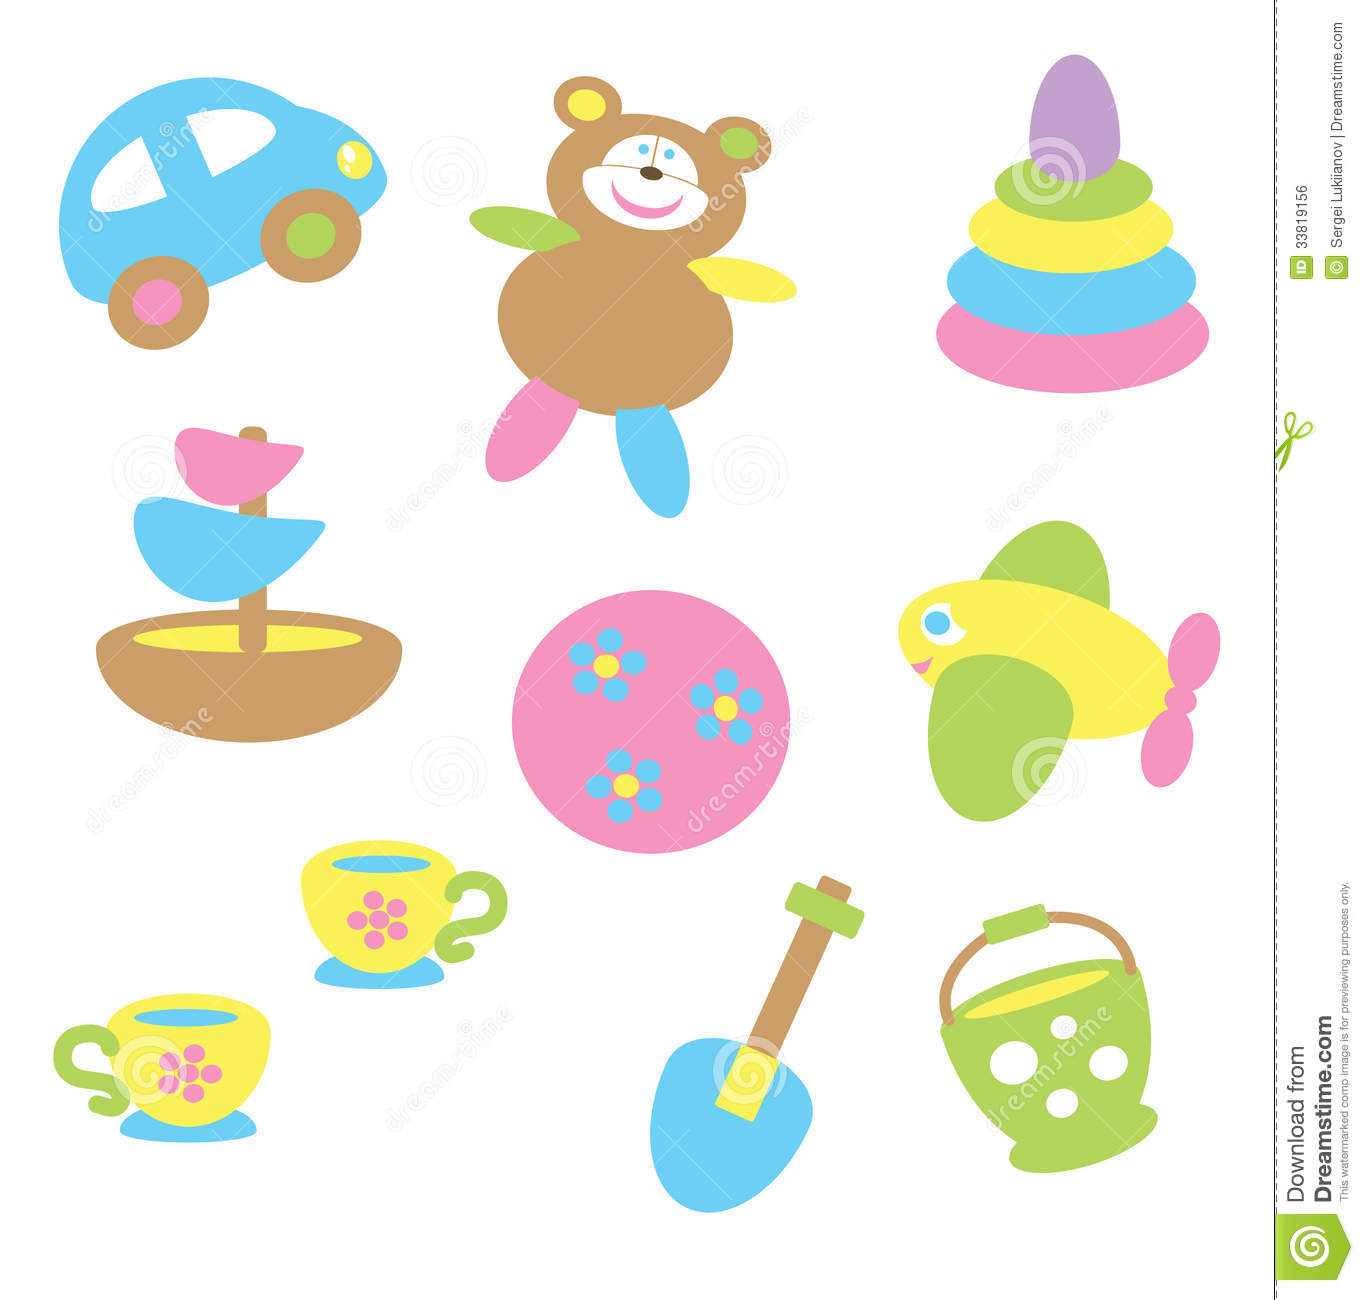 Baby Boy Toys Clip Art : Baby toys in pastel tone royalty free stock image